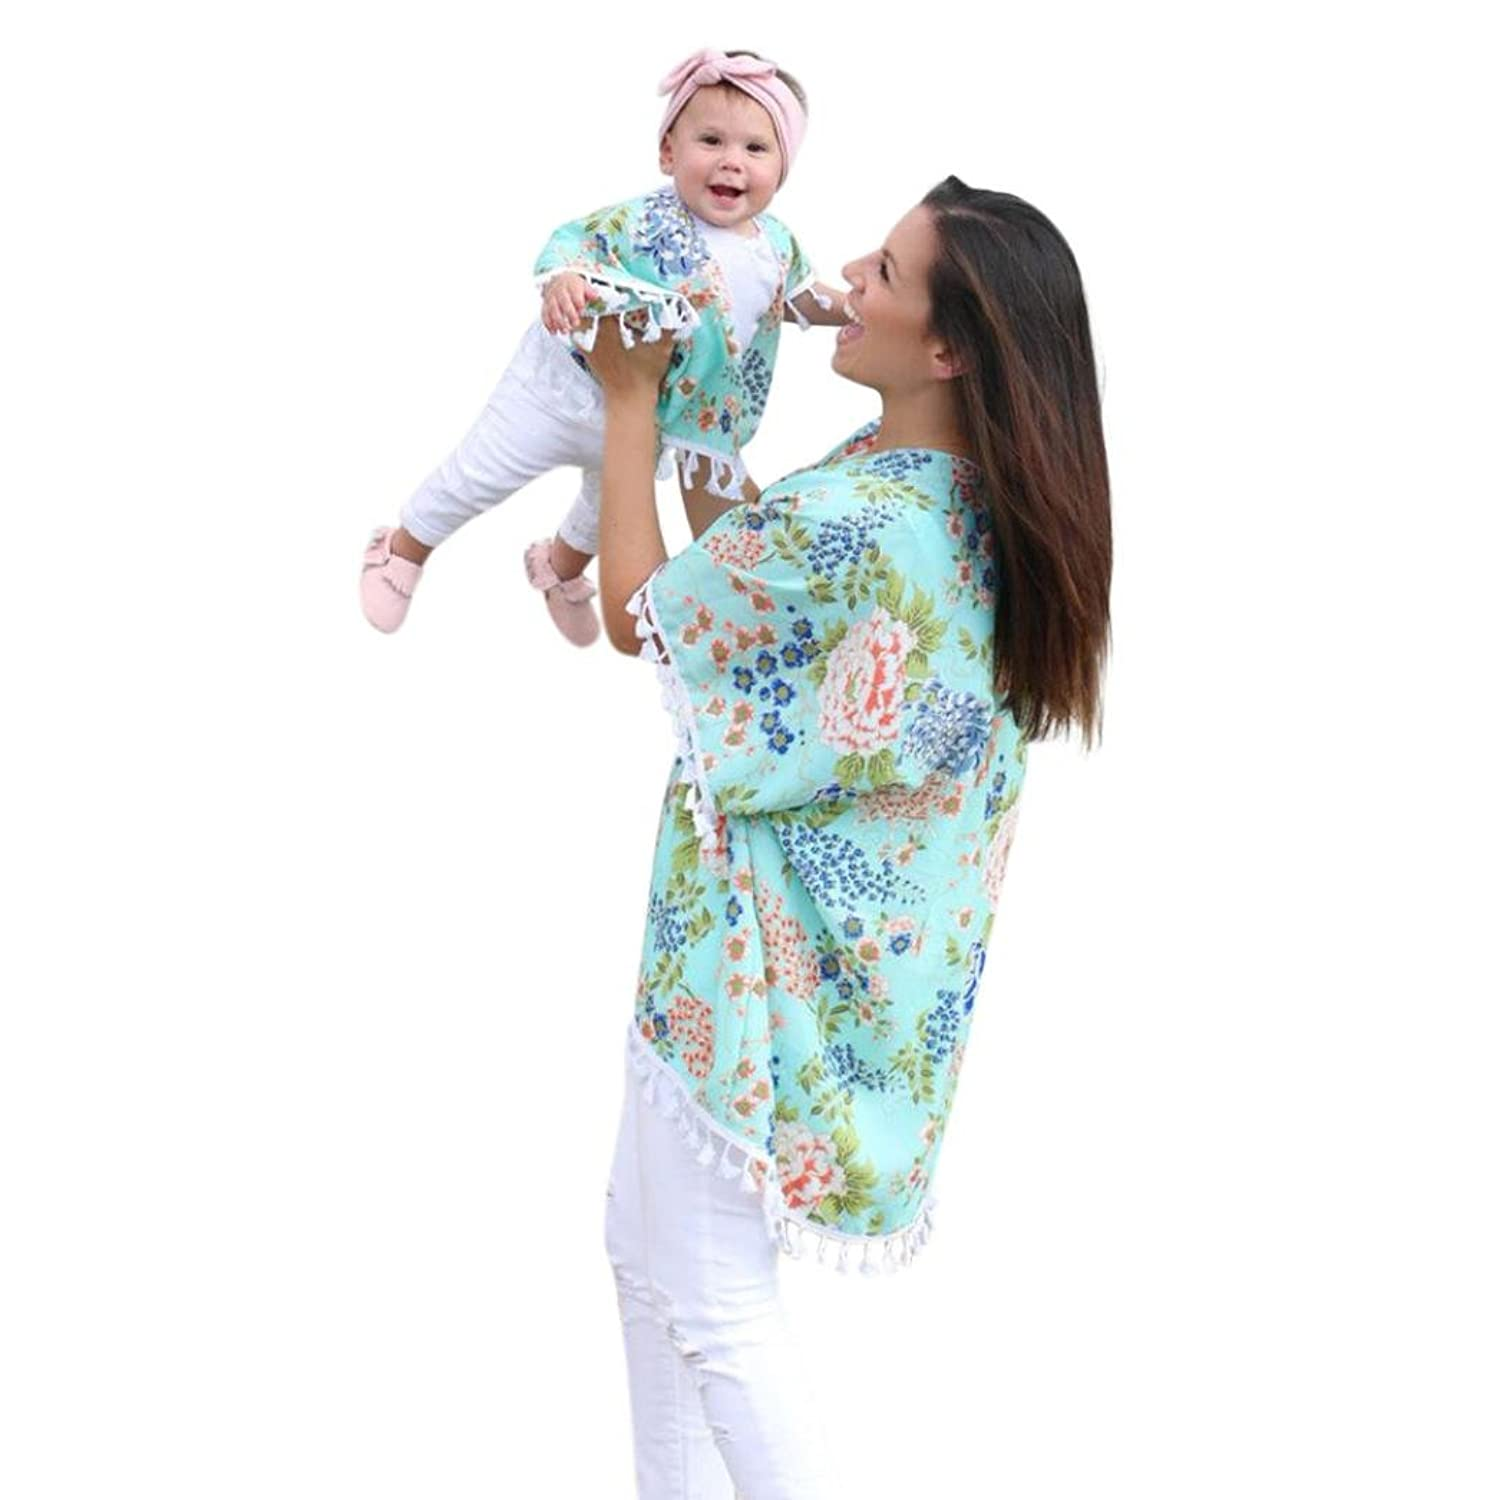 a087457e3 Mommy and Me Dresses,Women Baby Girls Flower Shawl Kimono Cardigan Tops  Mom&Me Family Outfits Clothes Mother Daughter Matching Shirts Features: